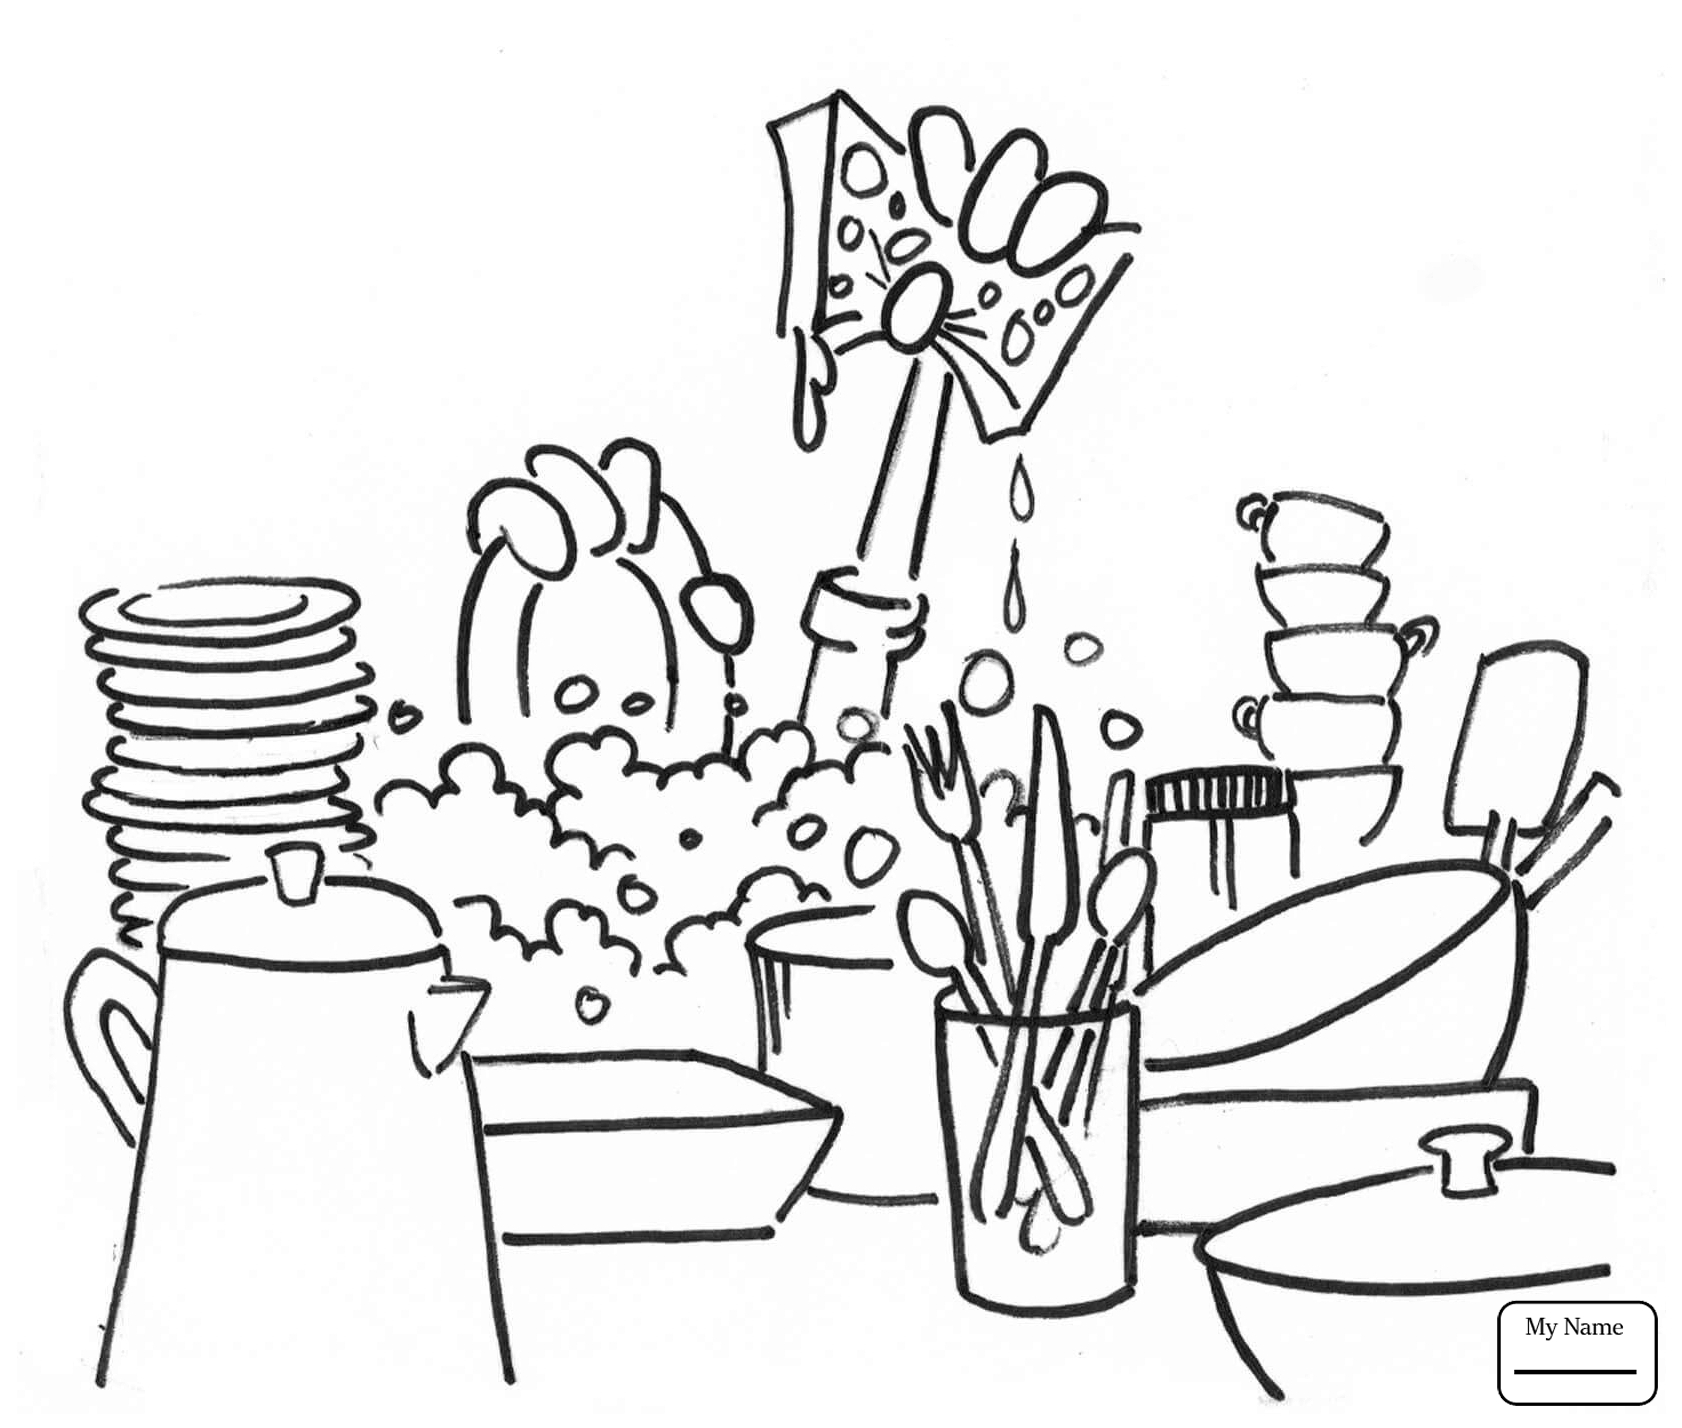 1682x1428 Kids Doing Chores Coloring Pages Download Coloring For Kids